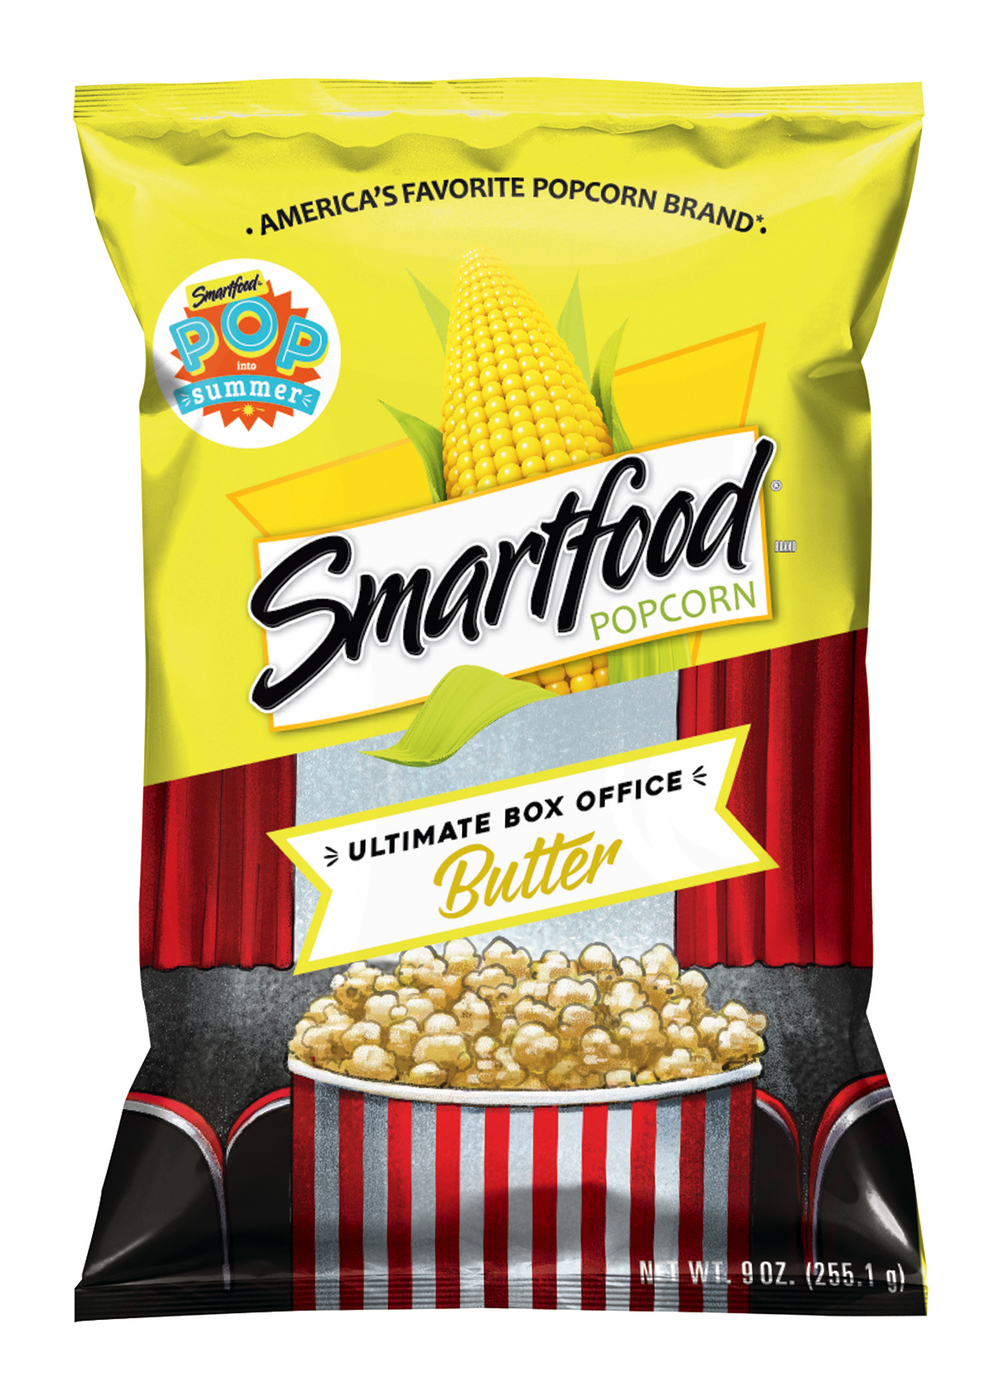 CD16453_Smartfood_SummerOfPopcorn_PACKAGING_V1_BUTTER_JB01.jpg